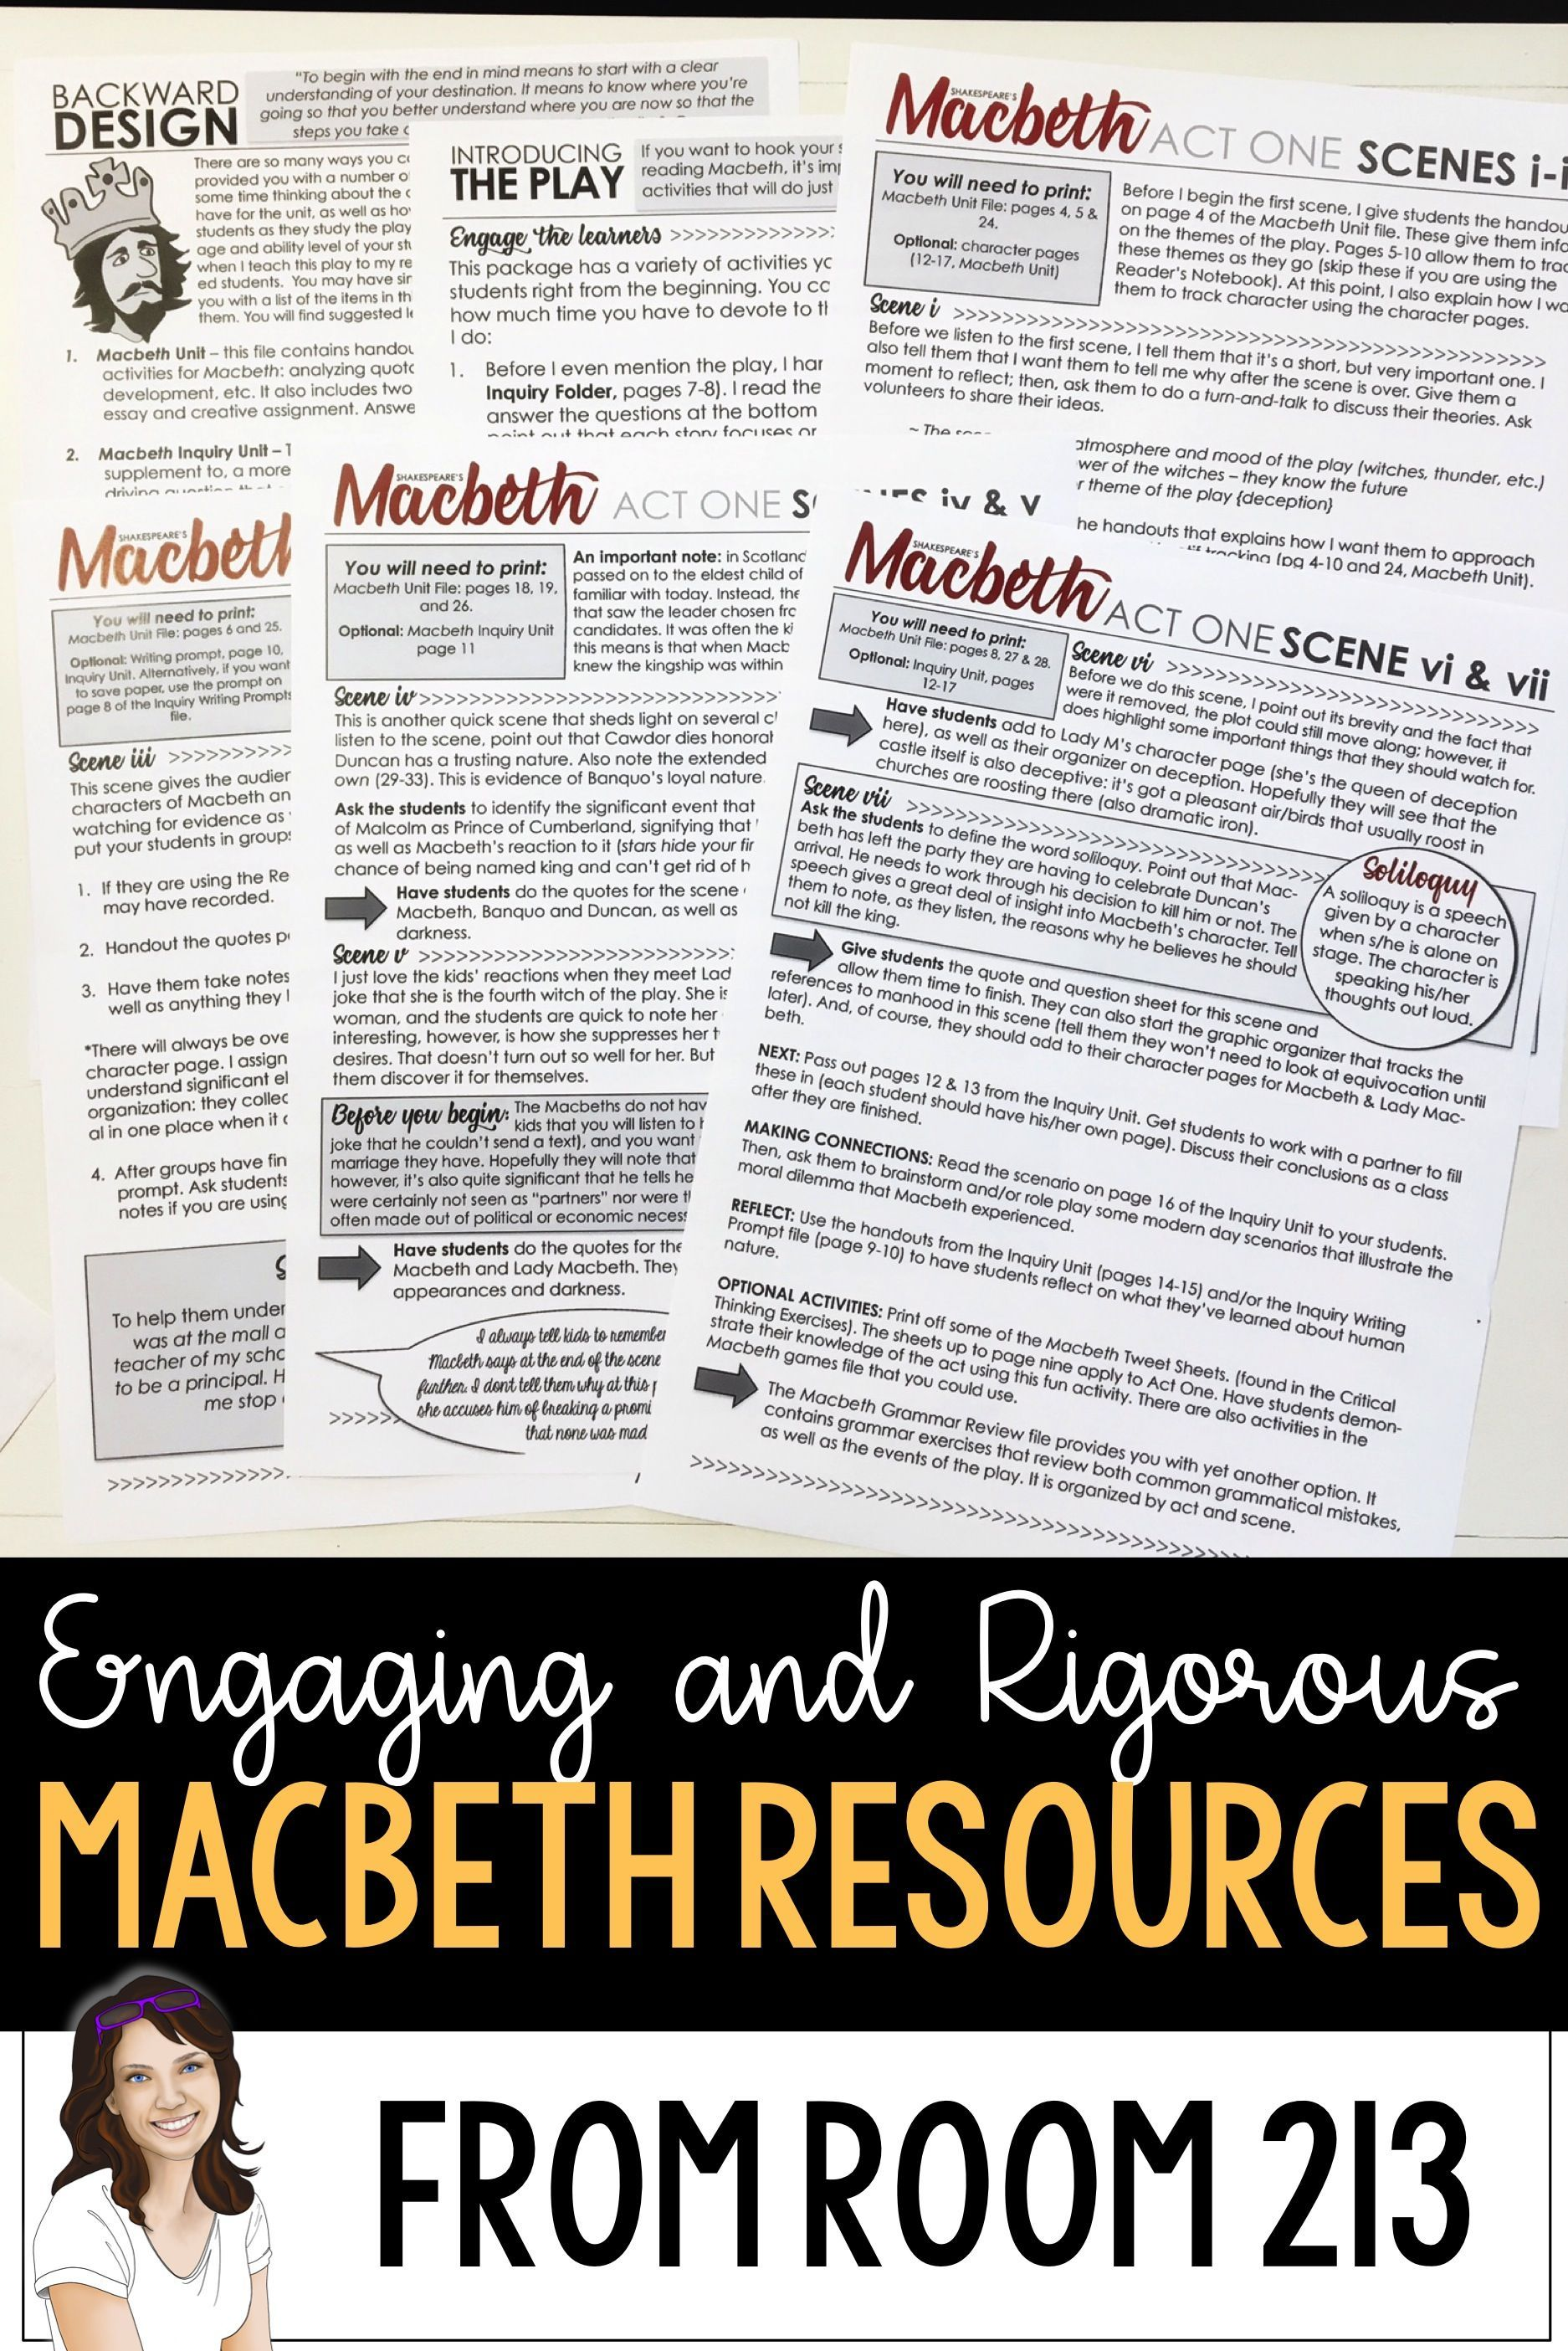 Teaching Macbeth Room 213 Has Everything You Ll Need To Engage Your Students